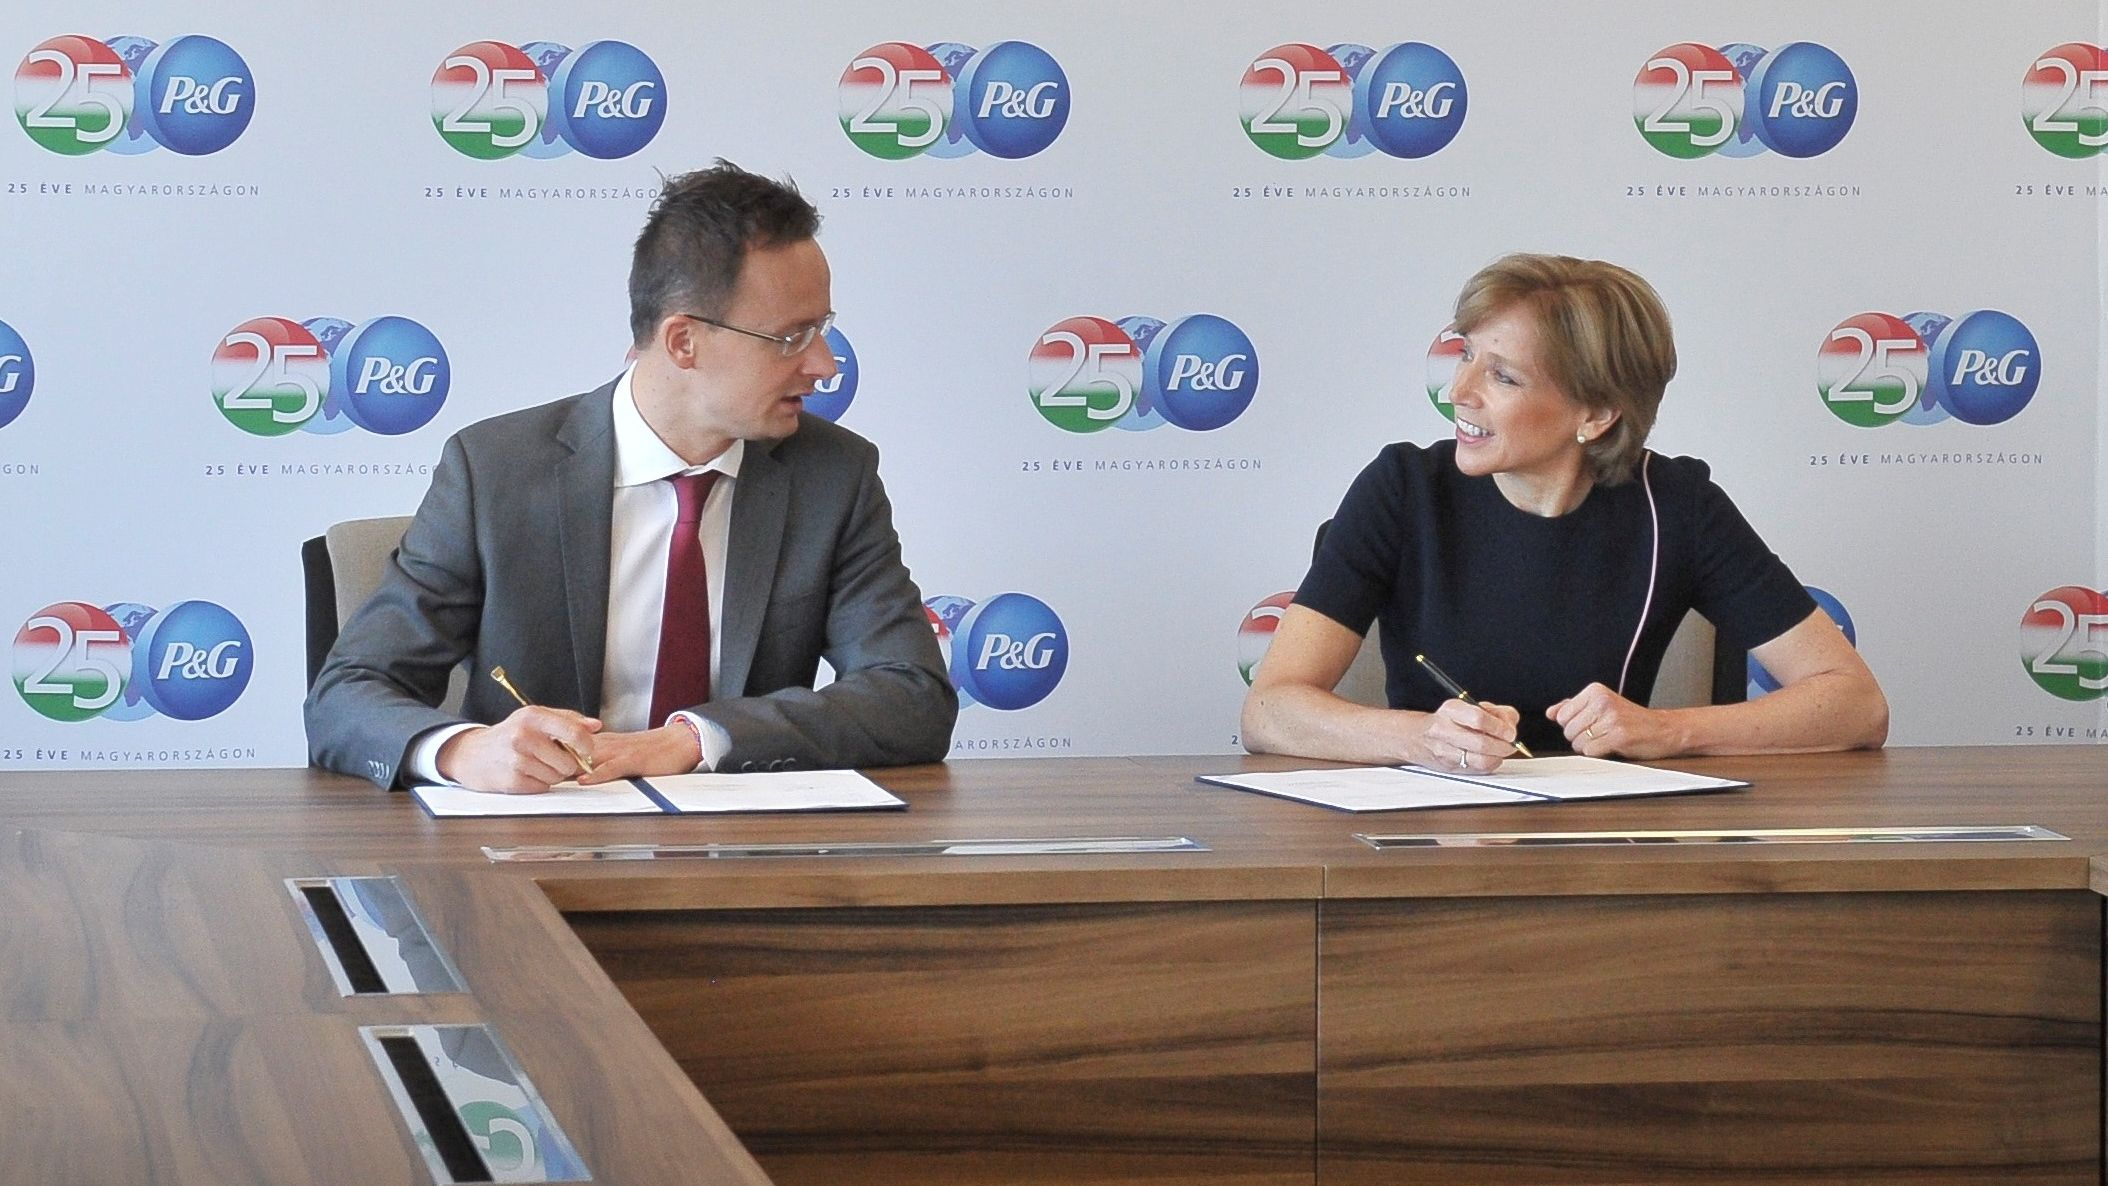 P&G announces its new investments and celebrates 25 years of growing together with Hungary